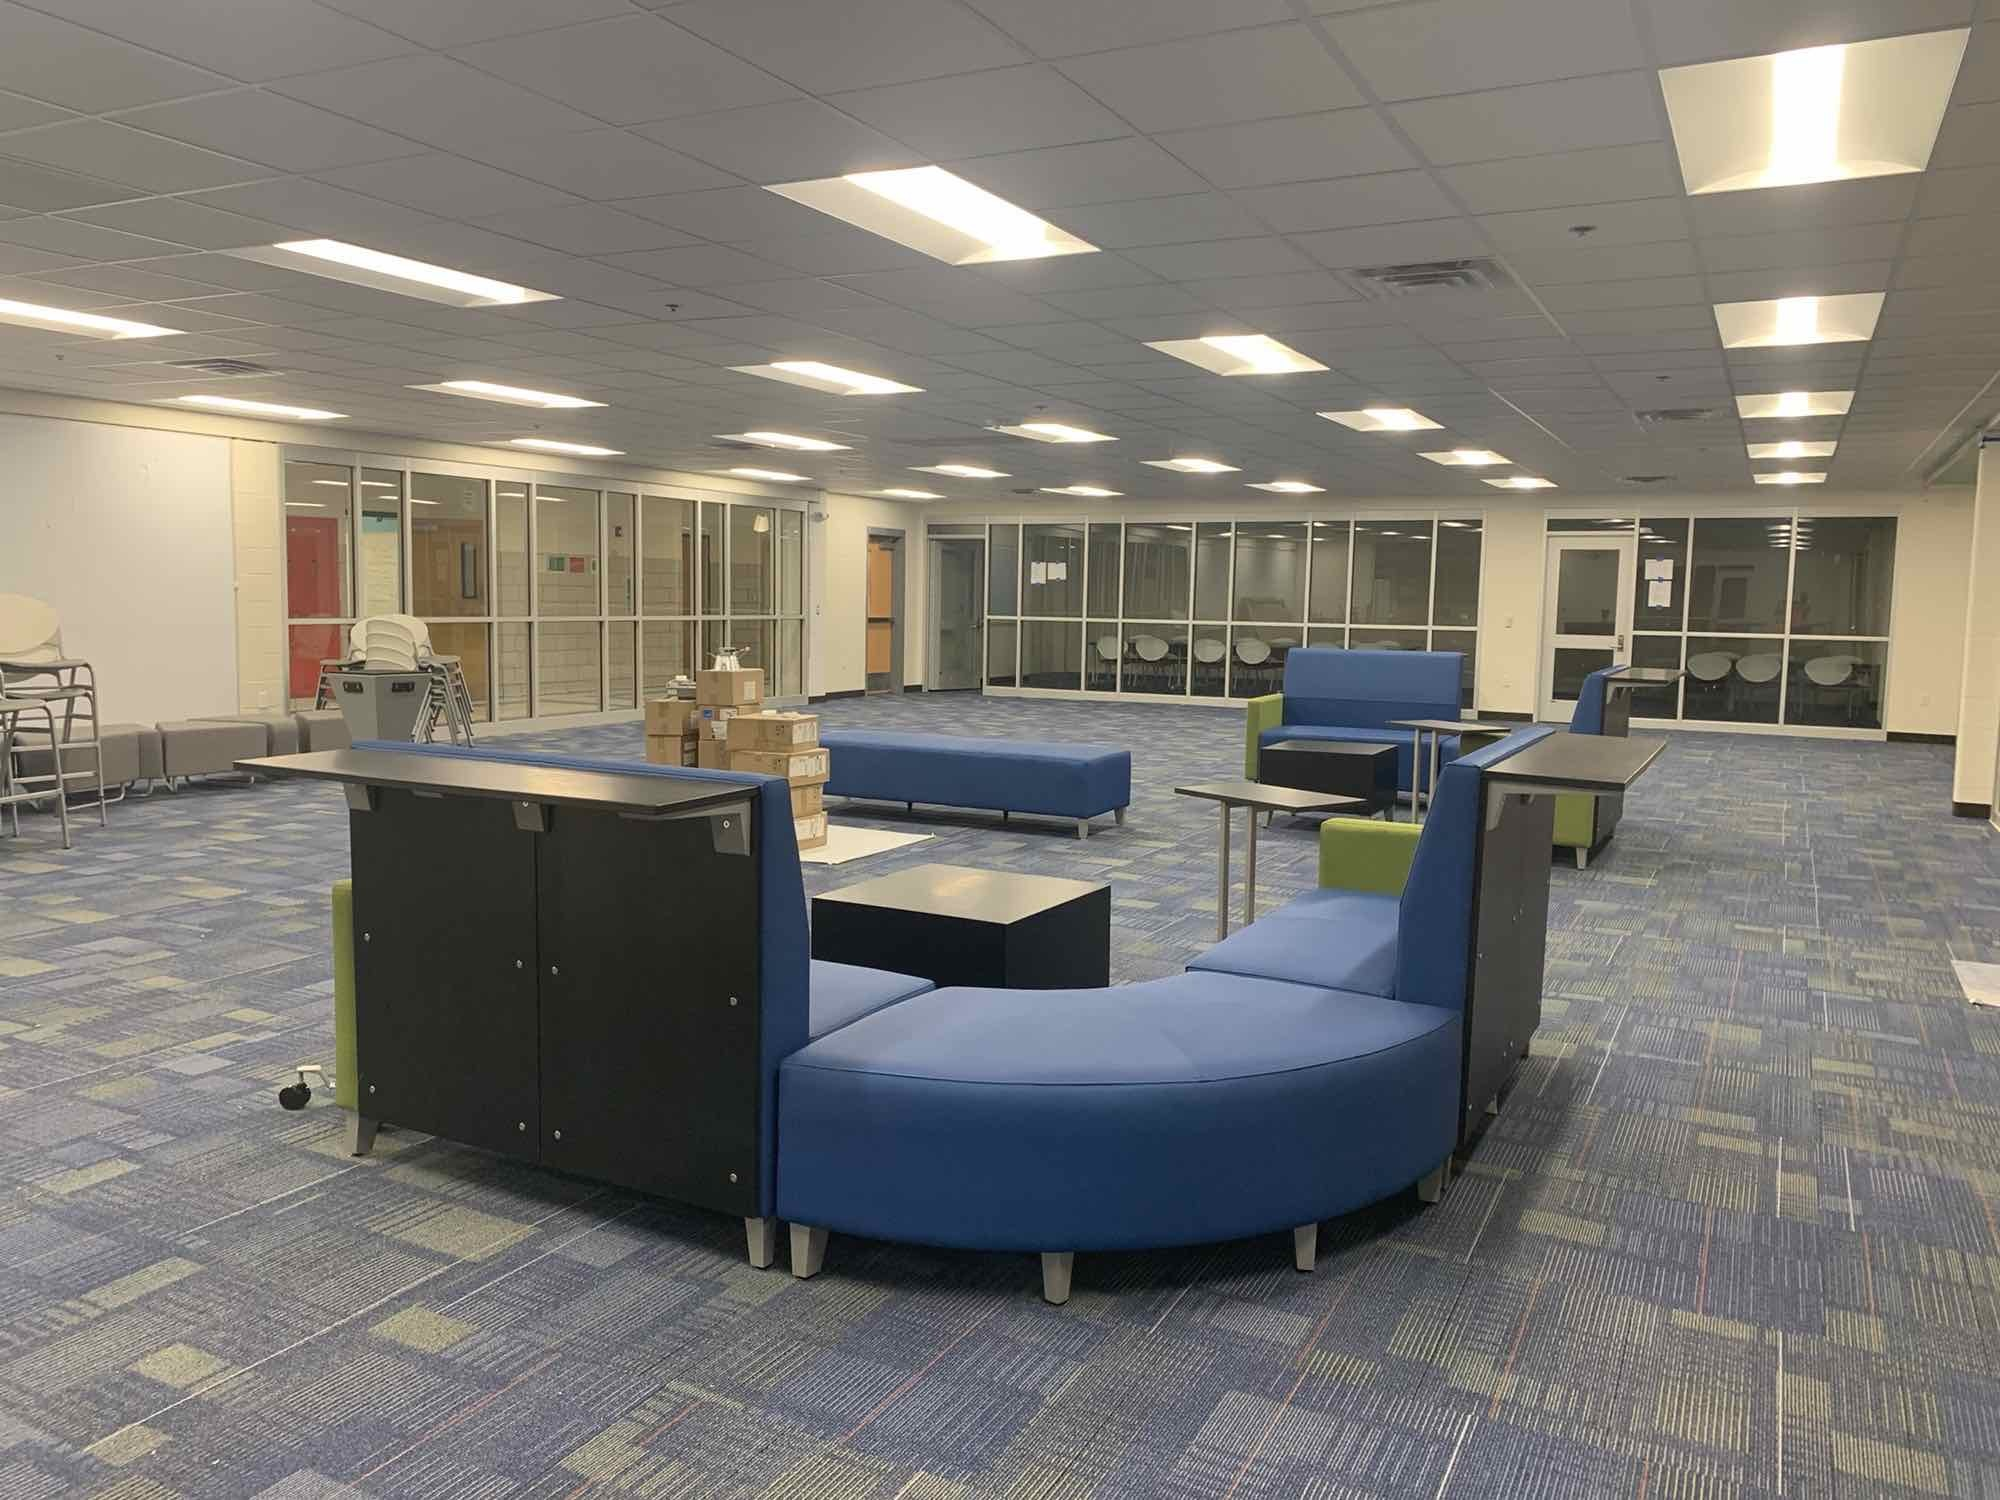 The Media Center is Nearing Completion! image 0